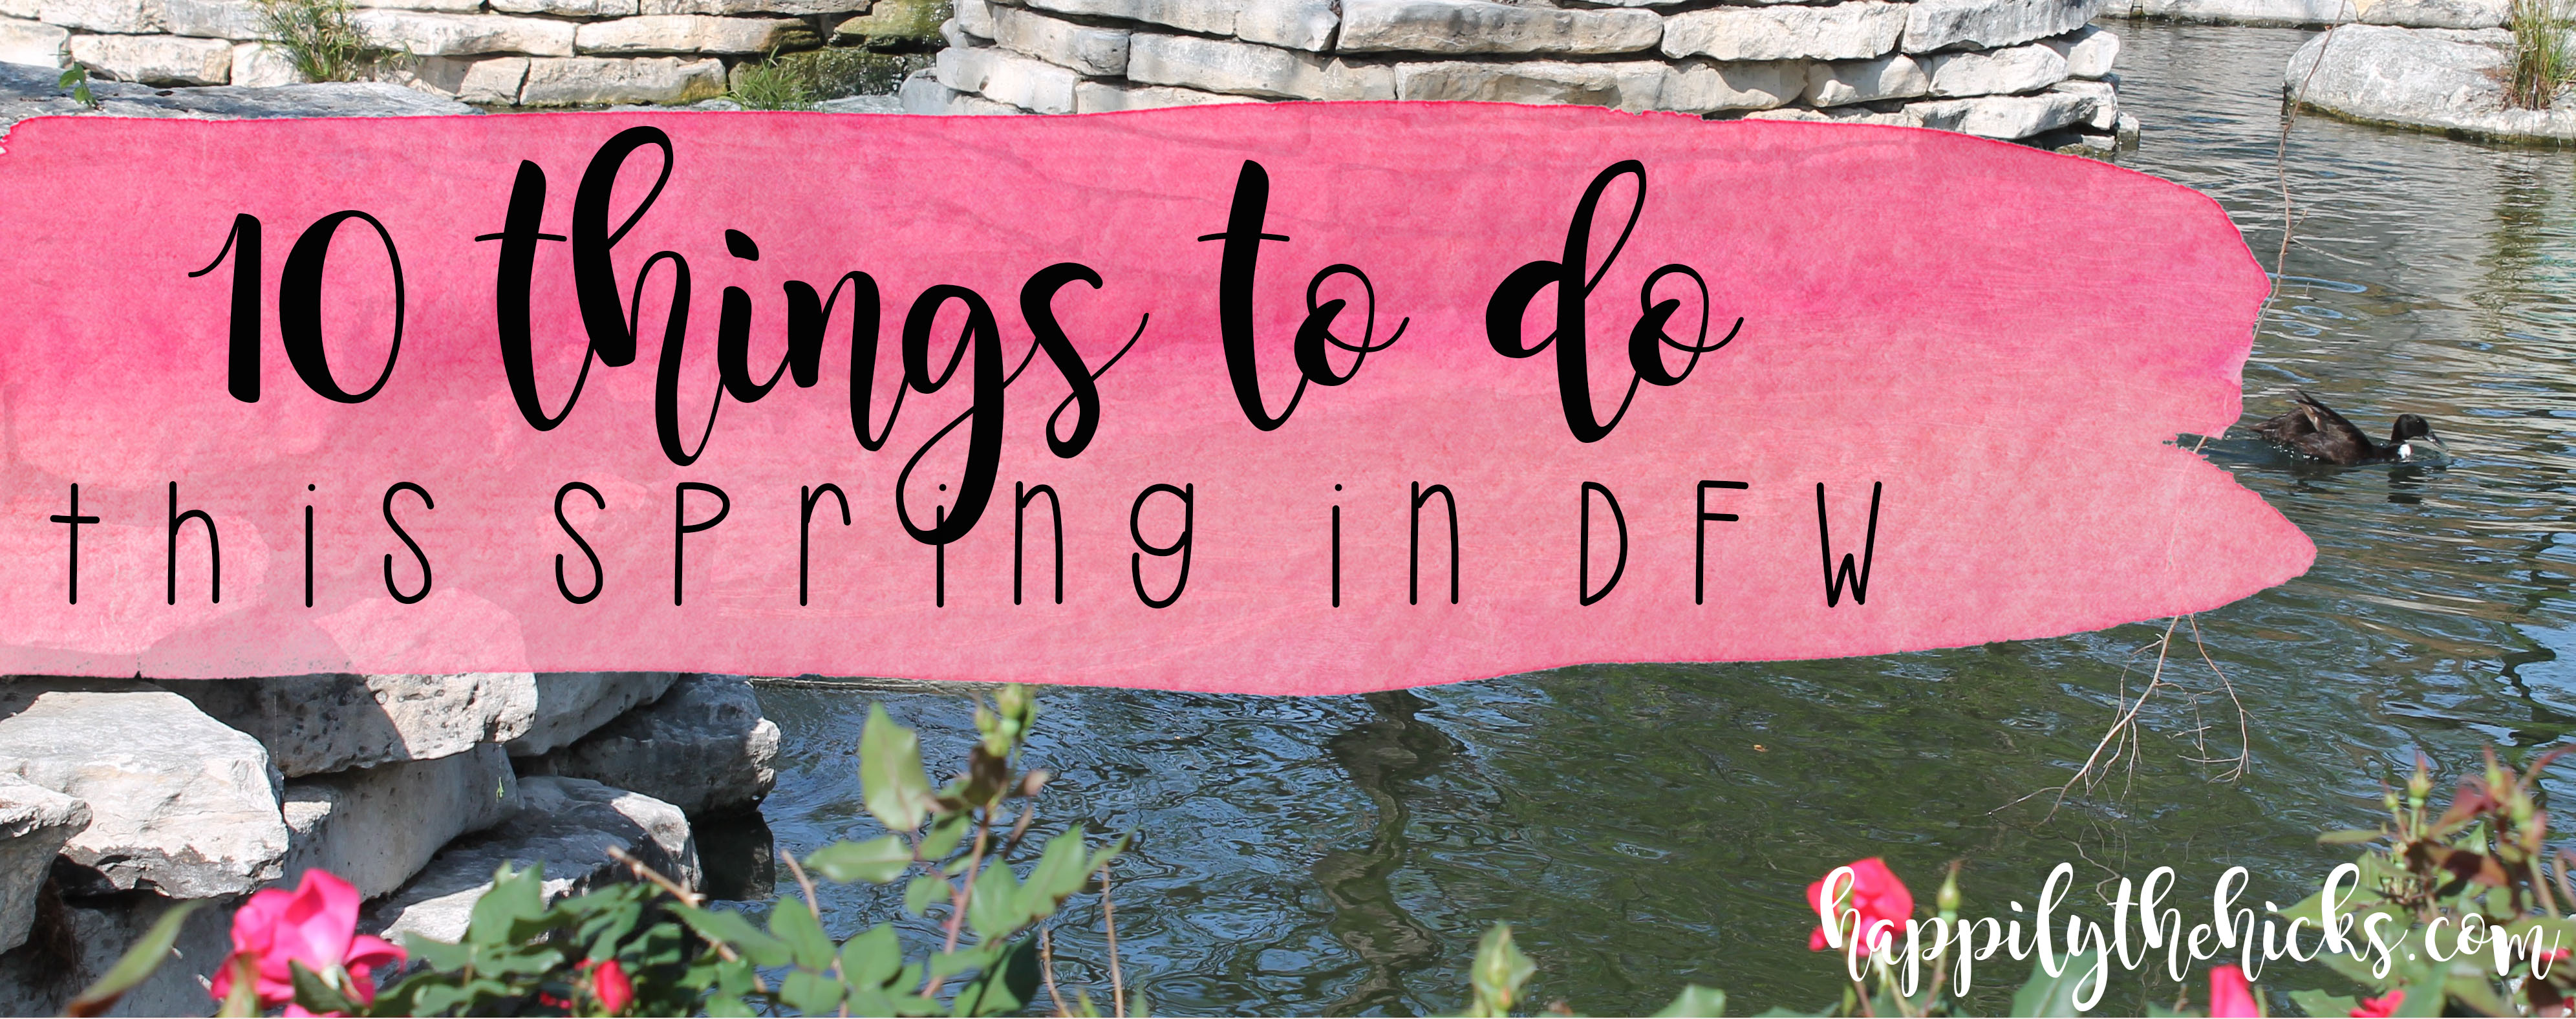 10 Things To Do This Spring3